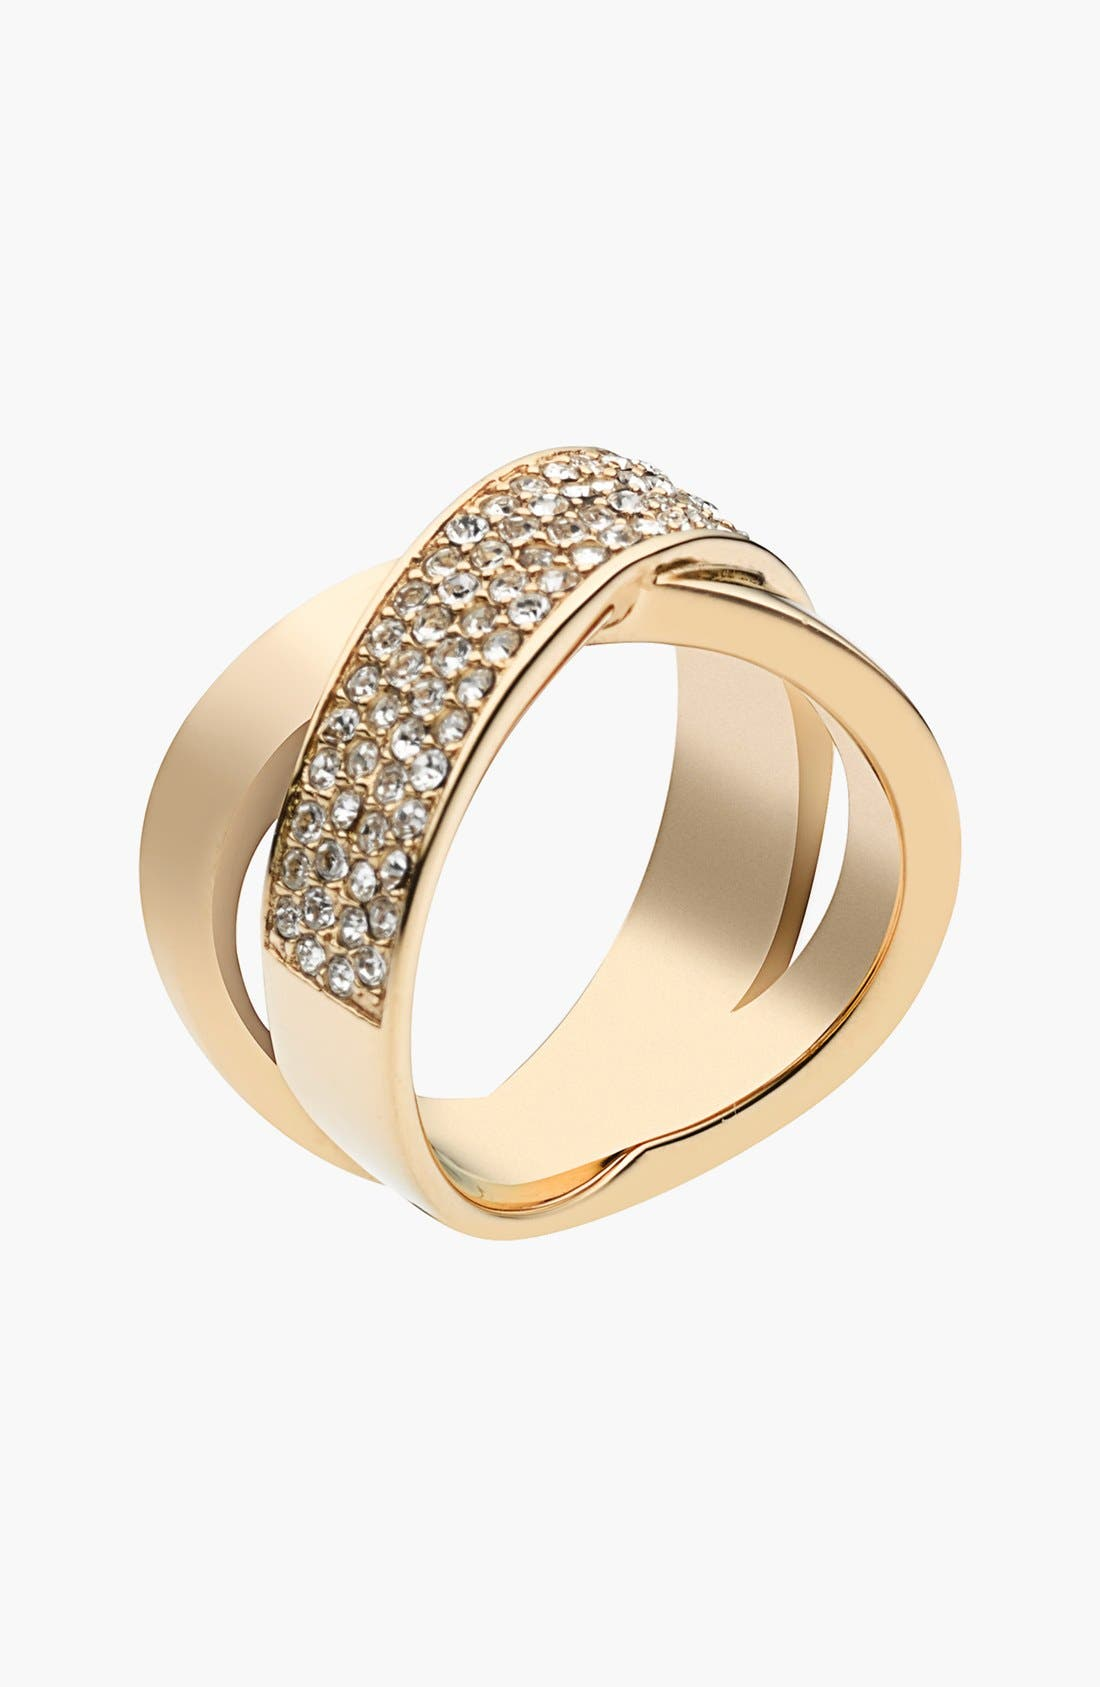 Alternate Image 1 Selected - Michael Kors 'Brilliance' Crisscross Ring